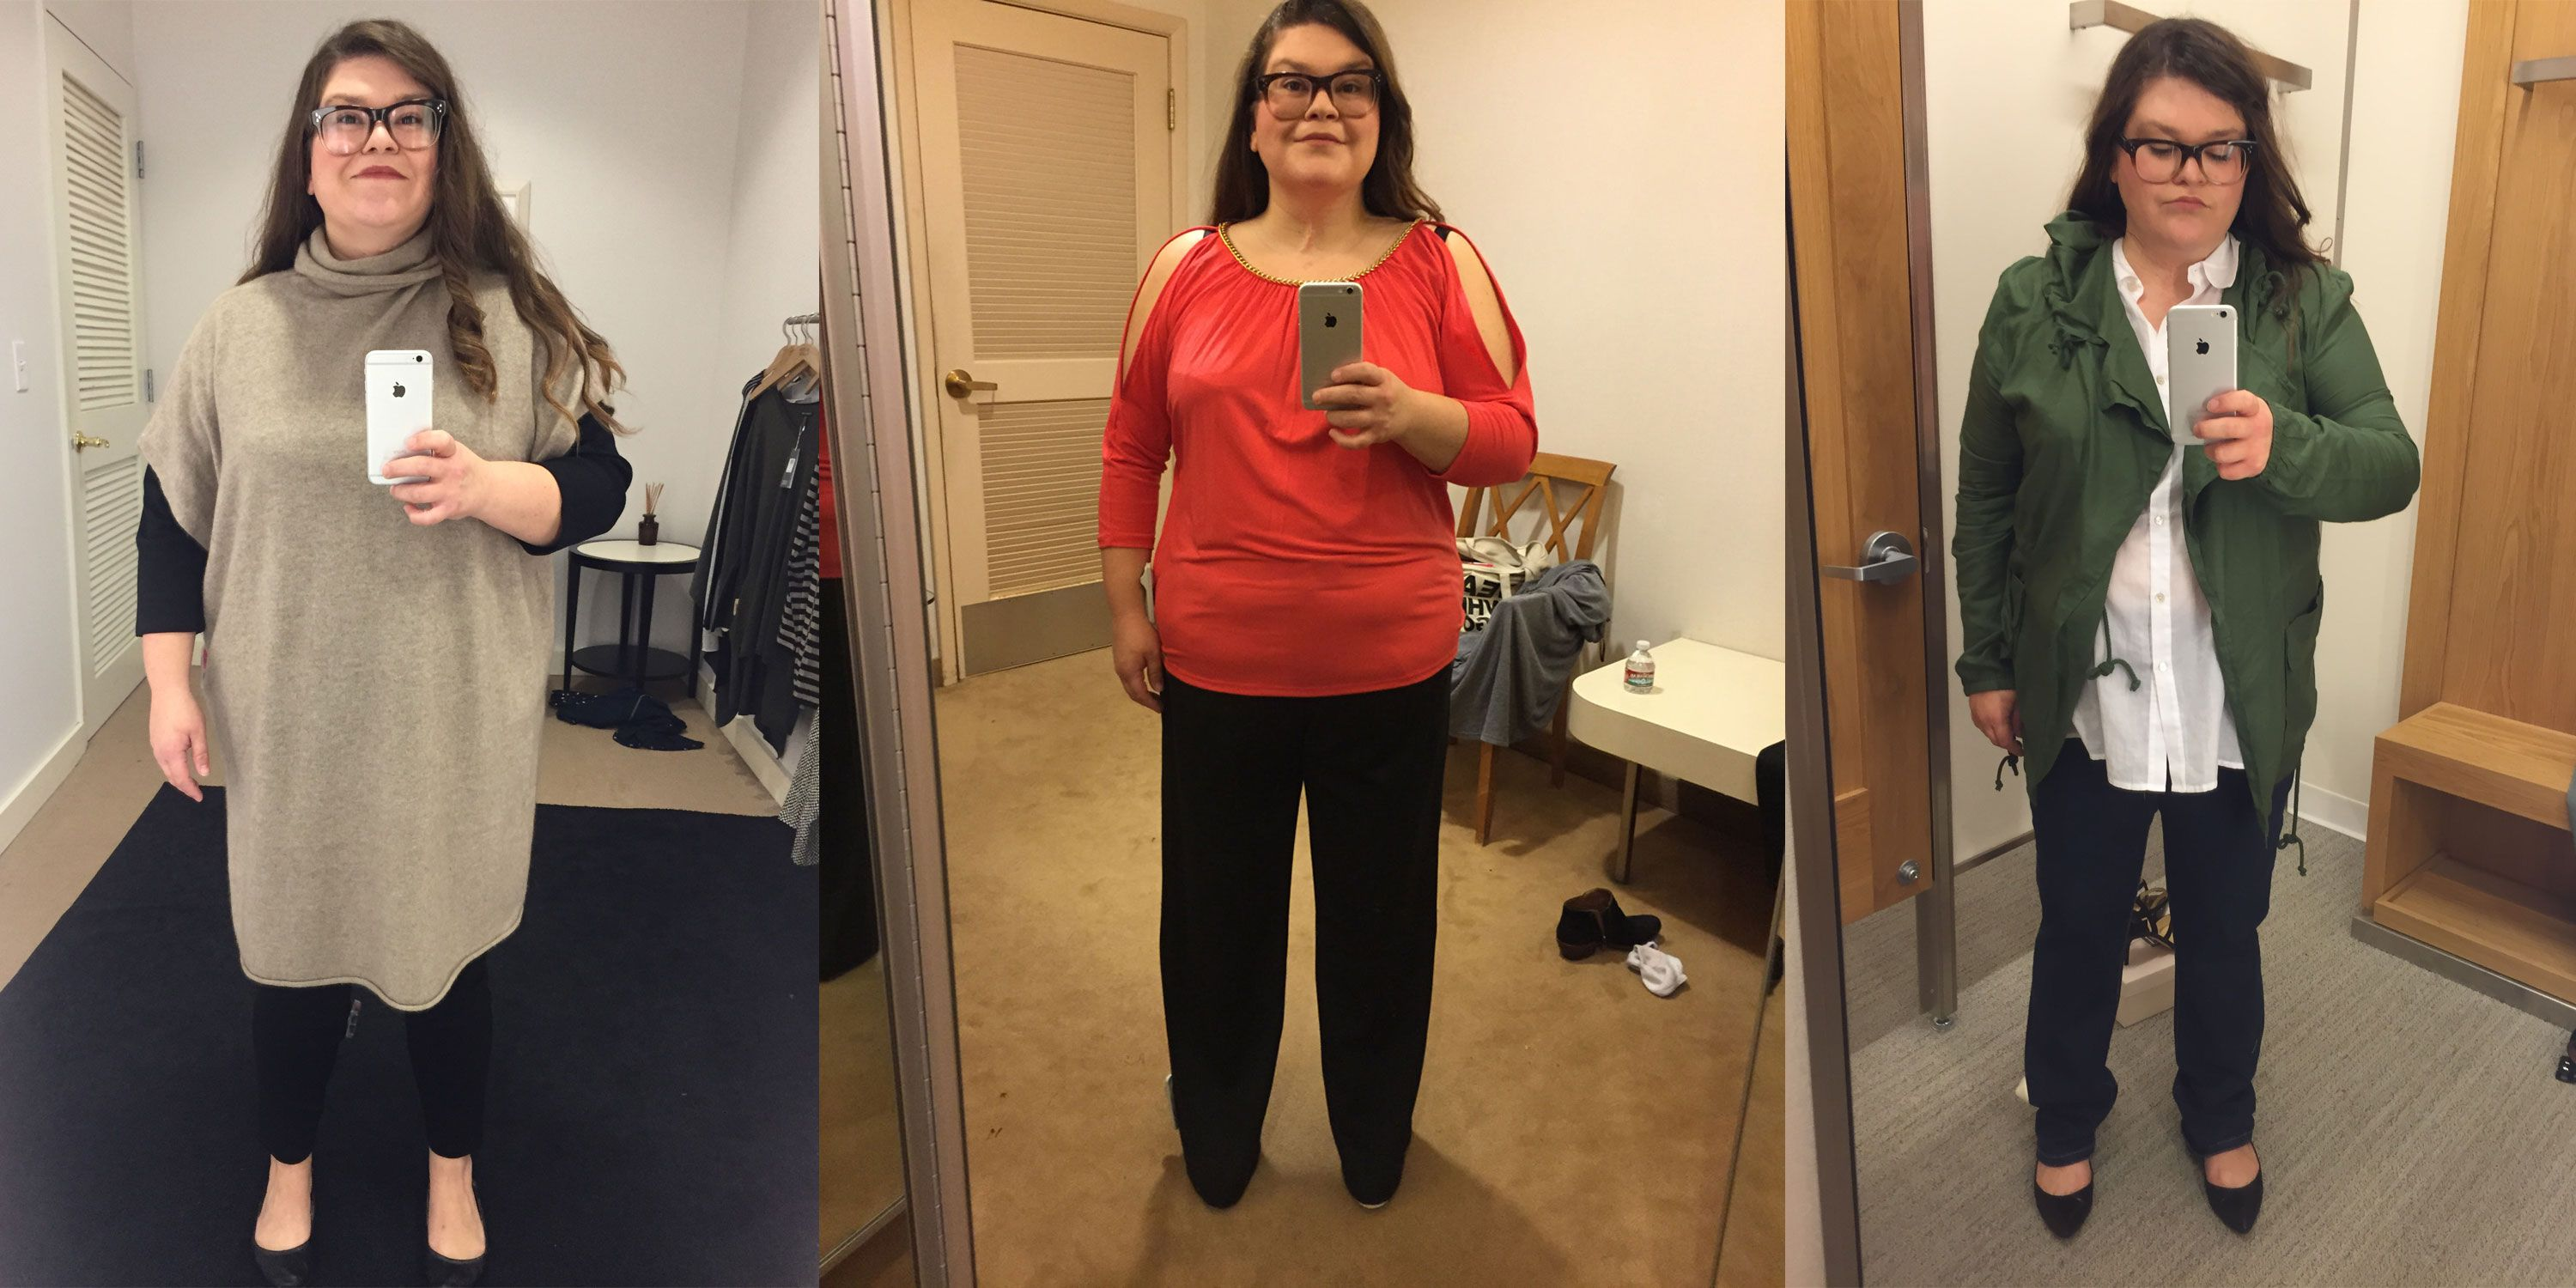 ea5d3f8ab08c1 Size 16 Woman Asks 5 Stylists to Dress Her in